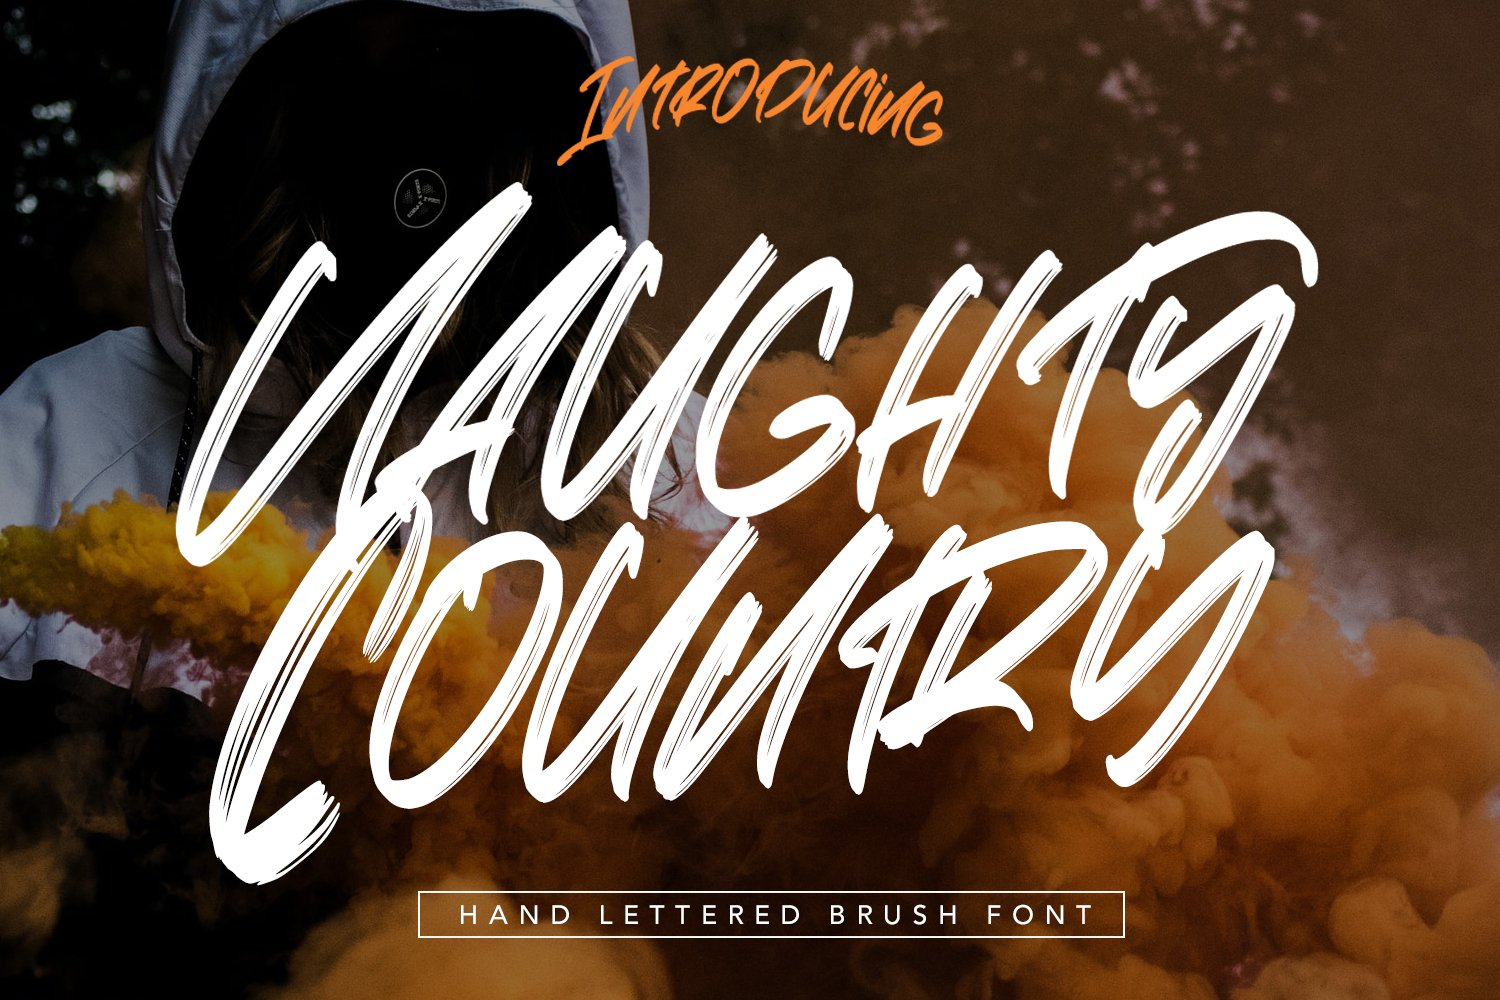 Naughty Country - Hand Lettered Brush Font example image 1